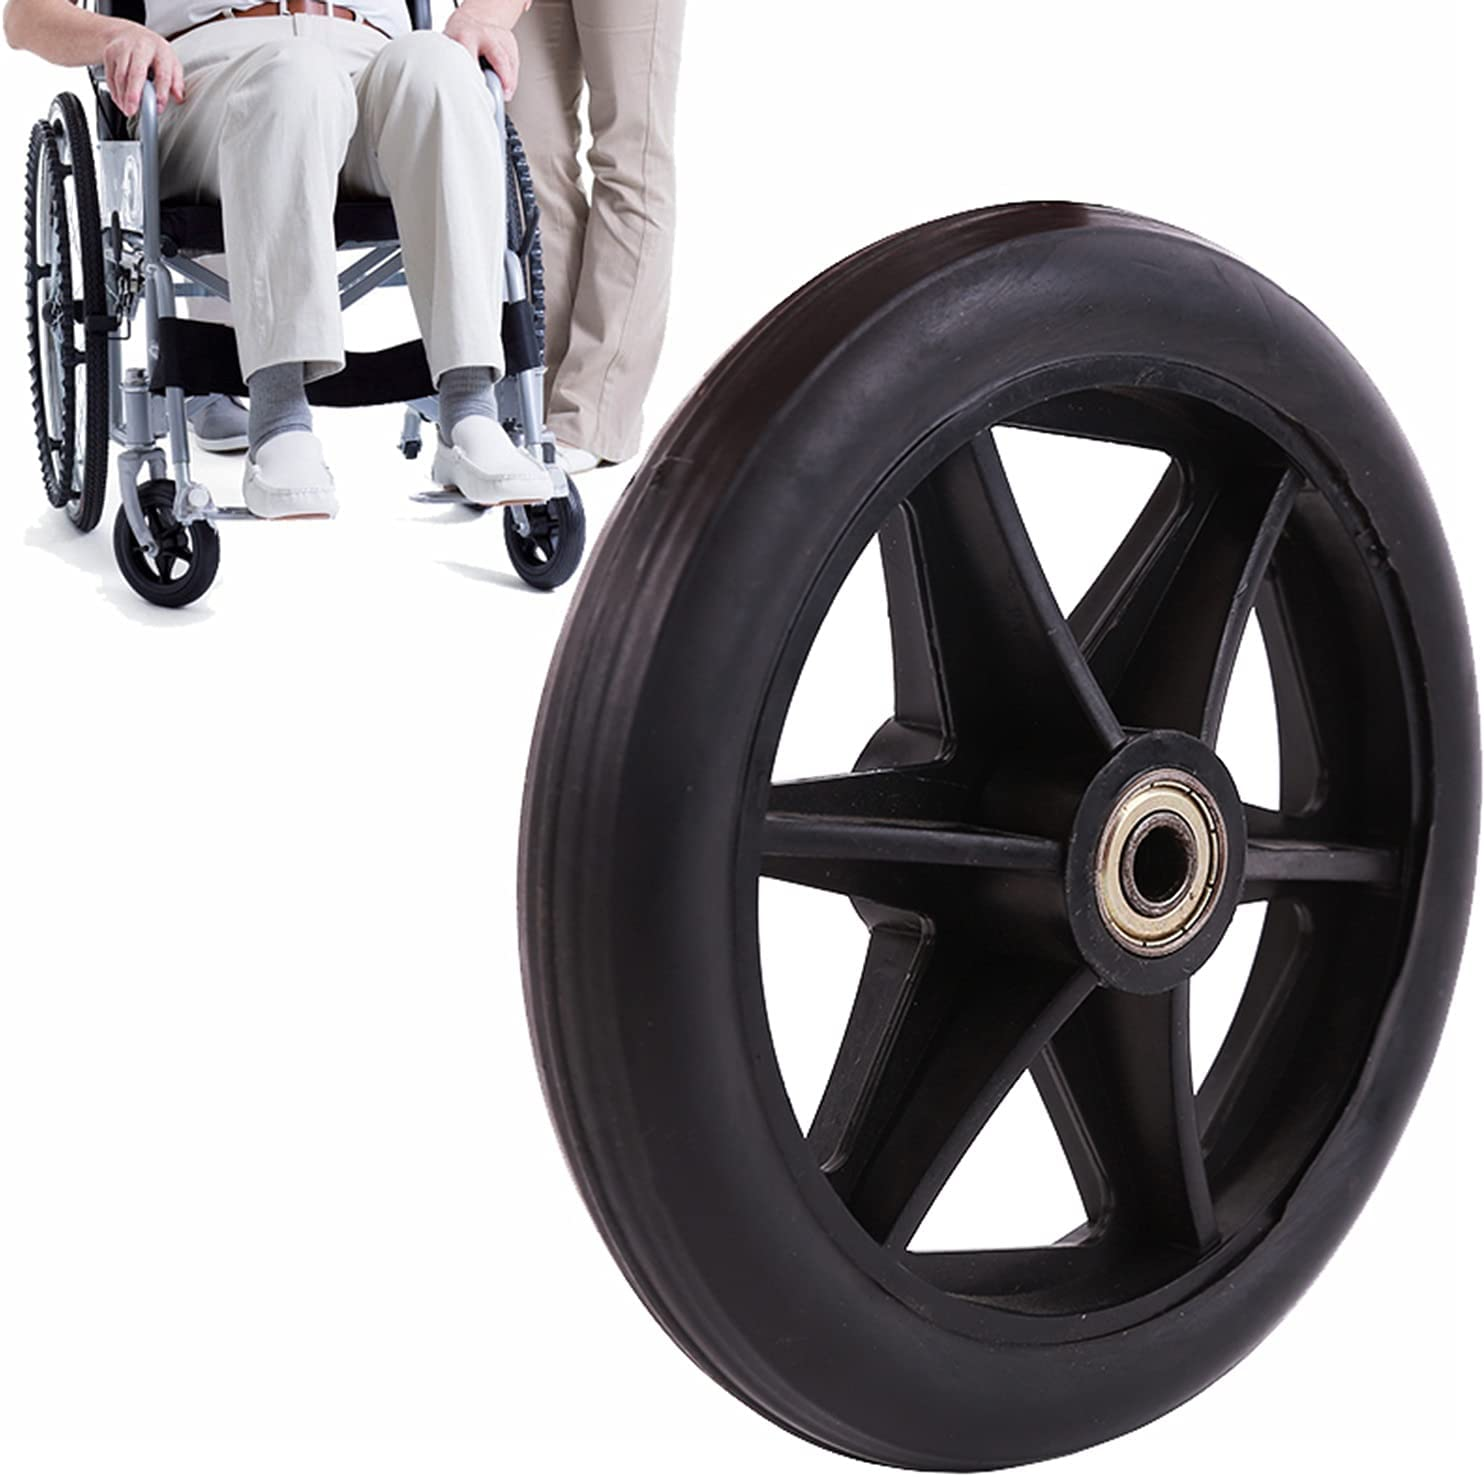 ASDFGHJ Black Solid Wheelchair Caster, Thick and Wear-Resistant